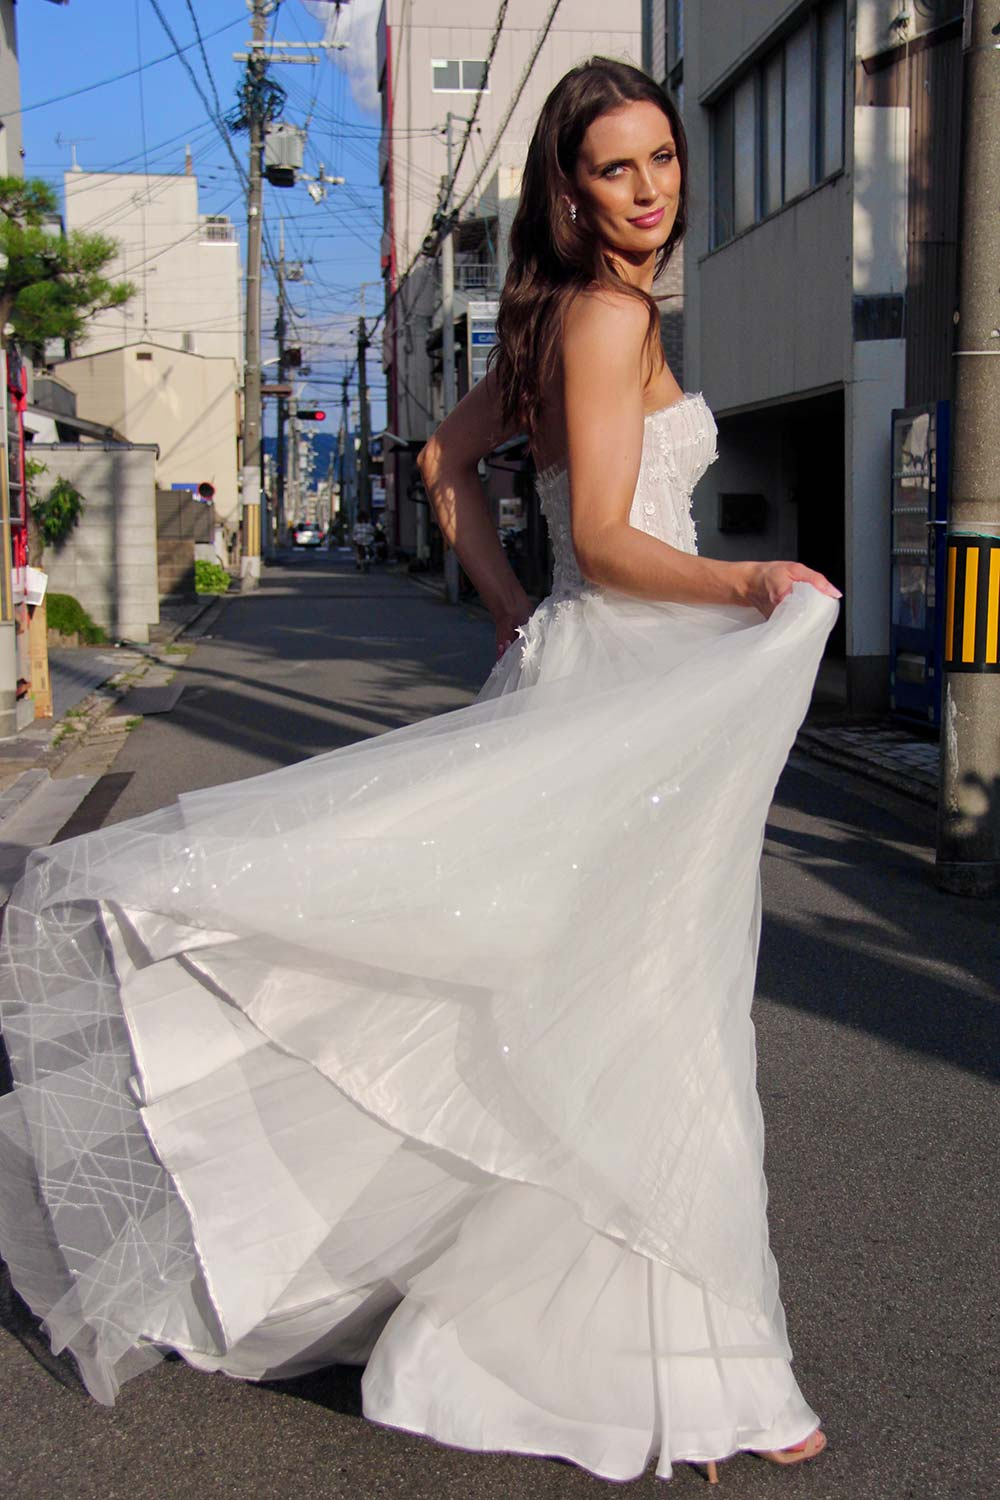 Female model wearing Vinka Design An Oriental Affair Wedding Dress. On a japanese street the side detail of a semi-sheer bodice with boning and hand-appliqued lace and skirt made with multiple layers of tulle